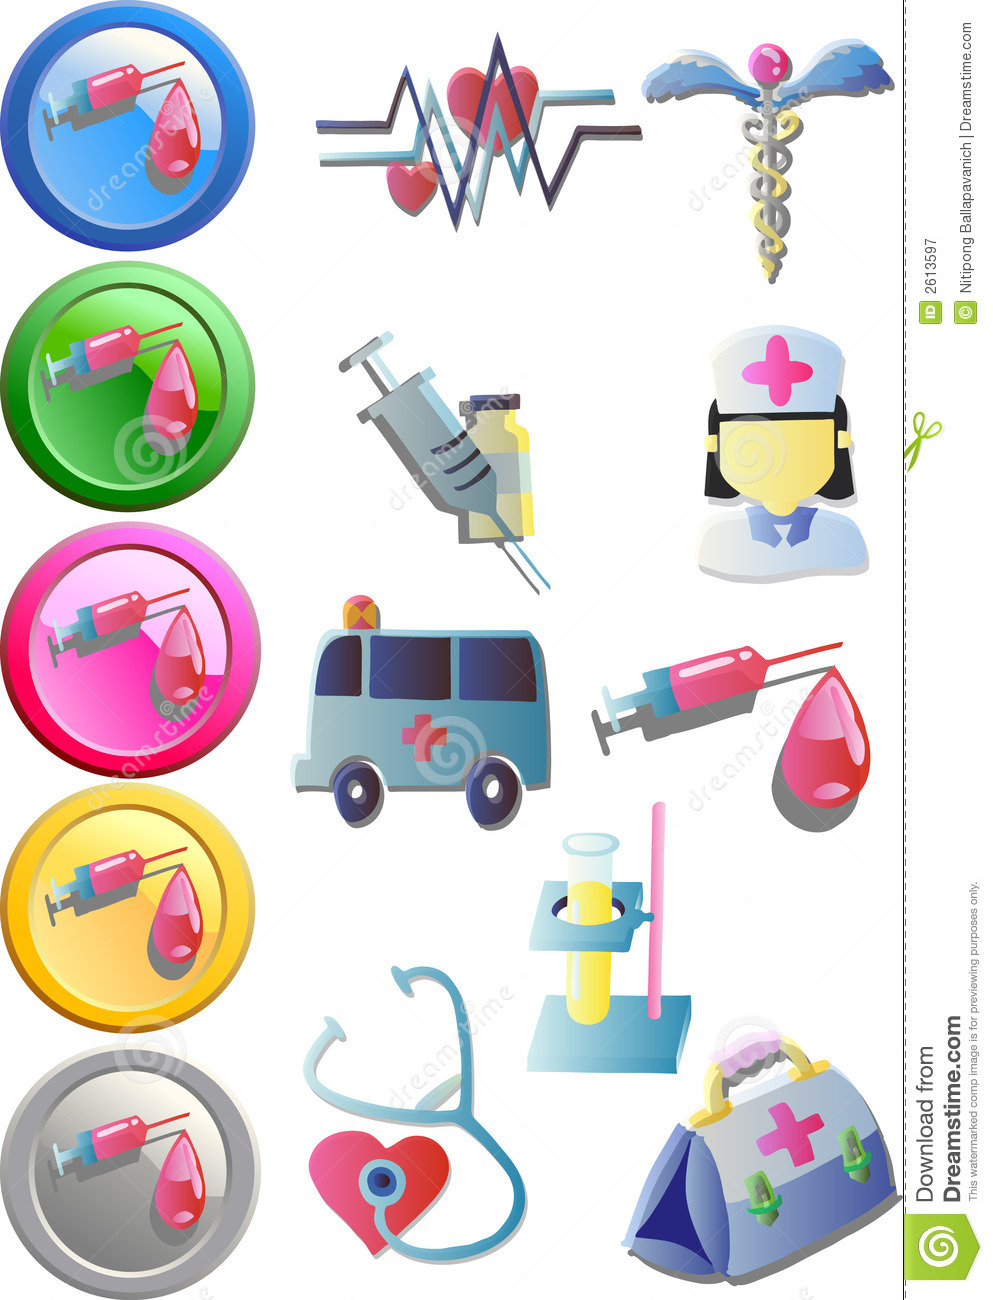 Free clipart medical images - .-Free clipart medical images - .-13